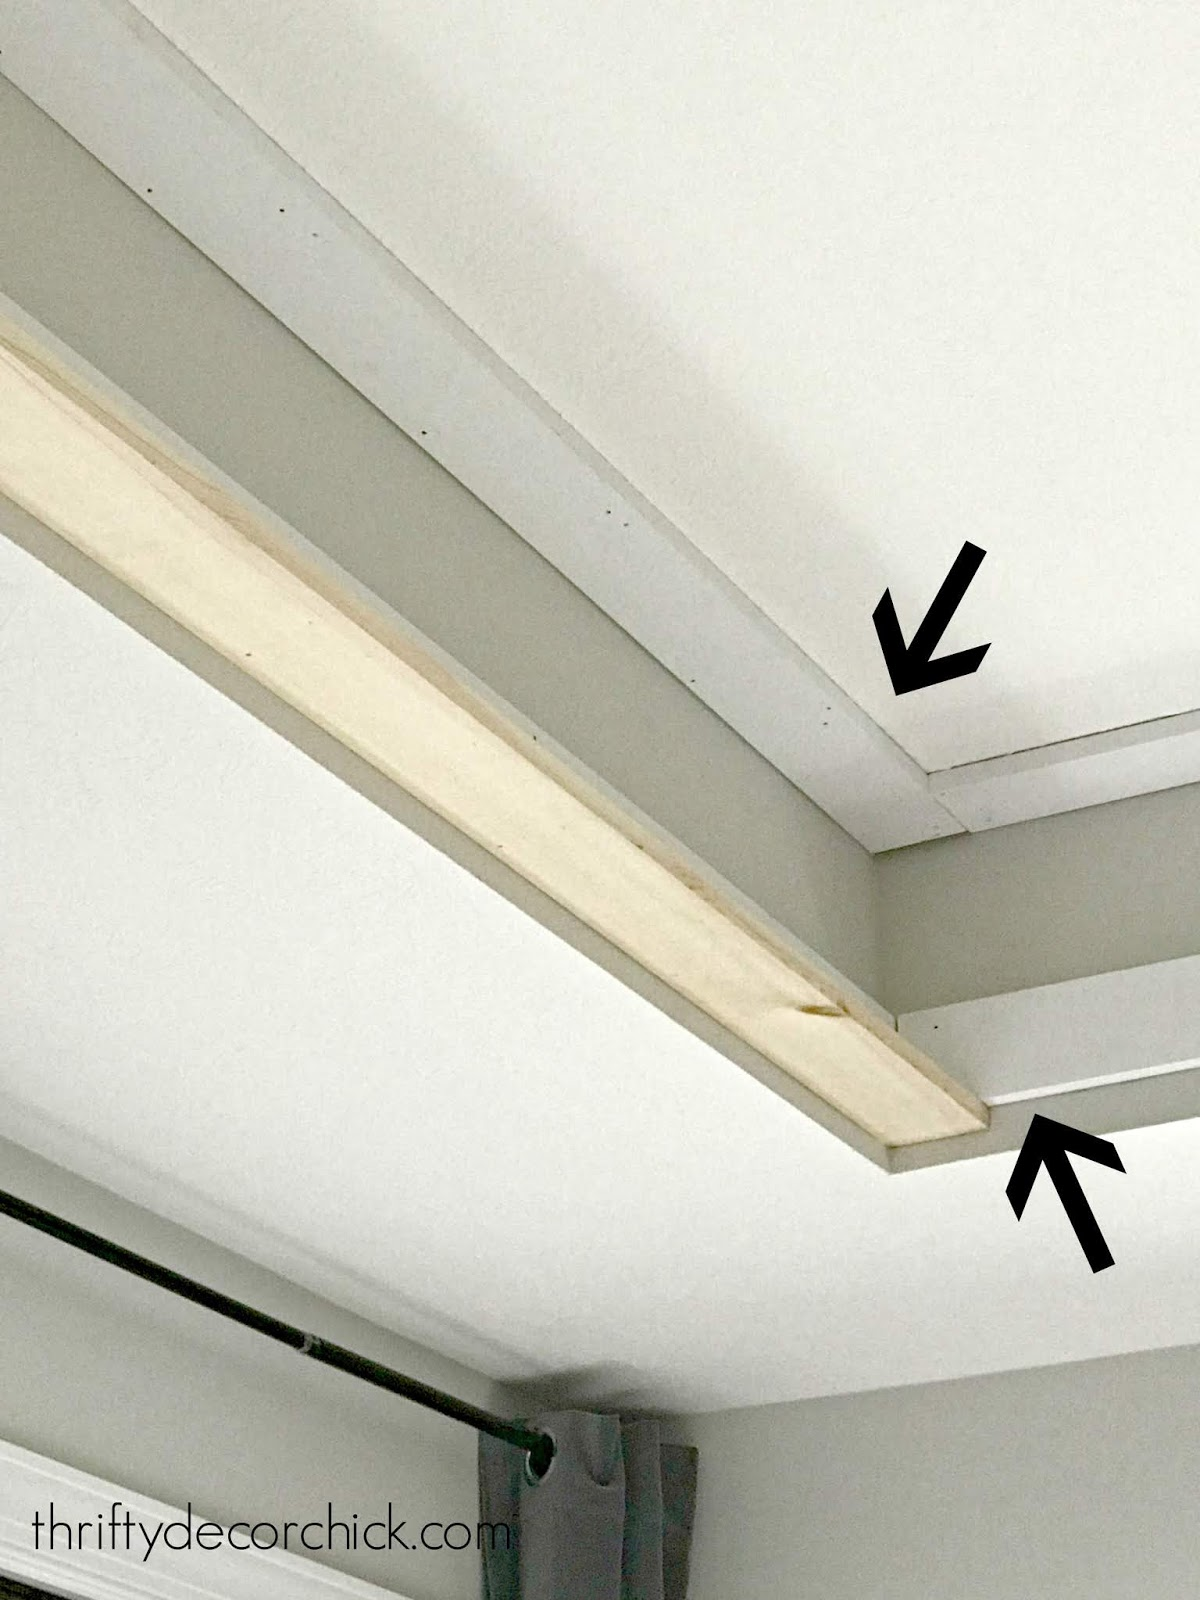 How to add fake wood beams to tray ceiling